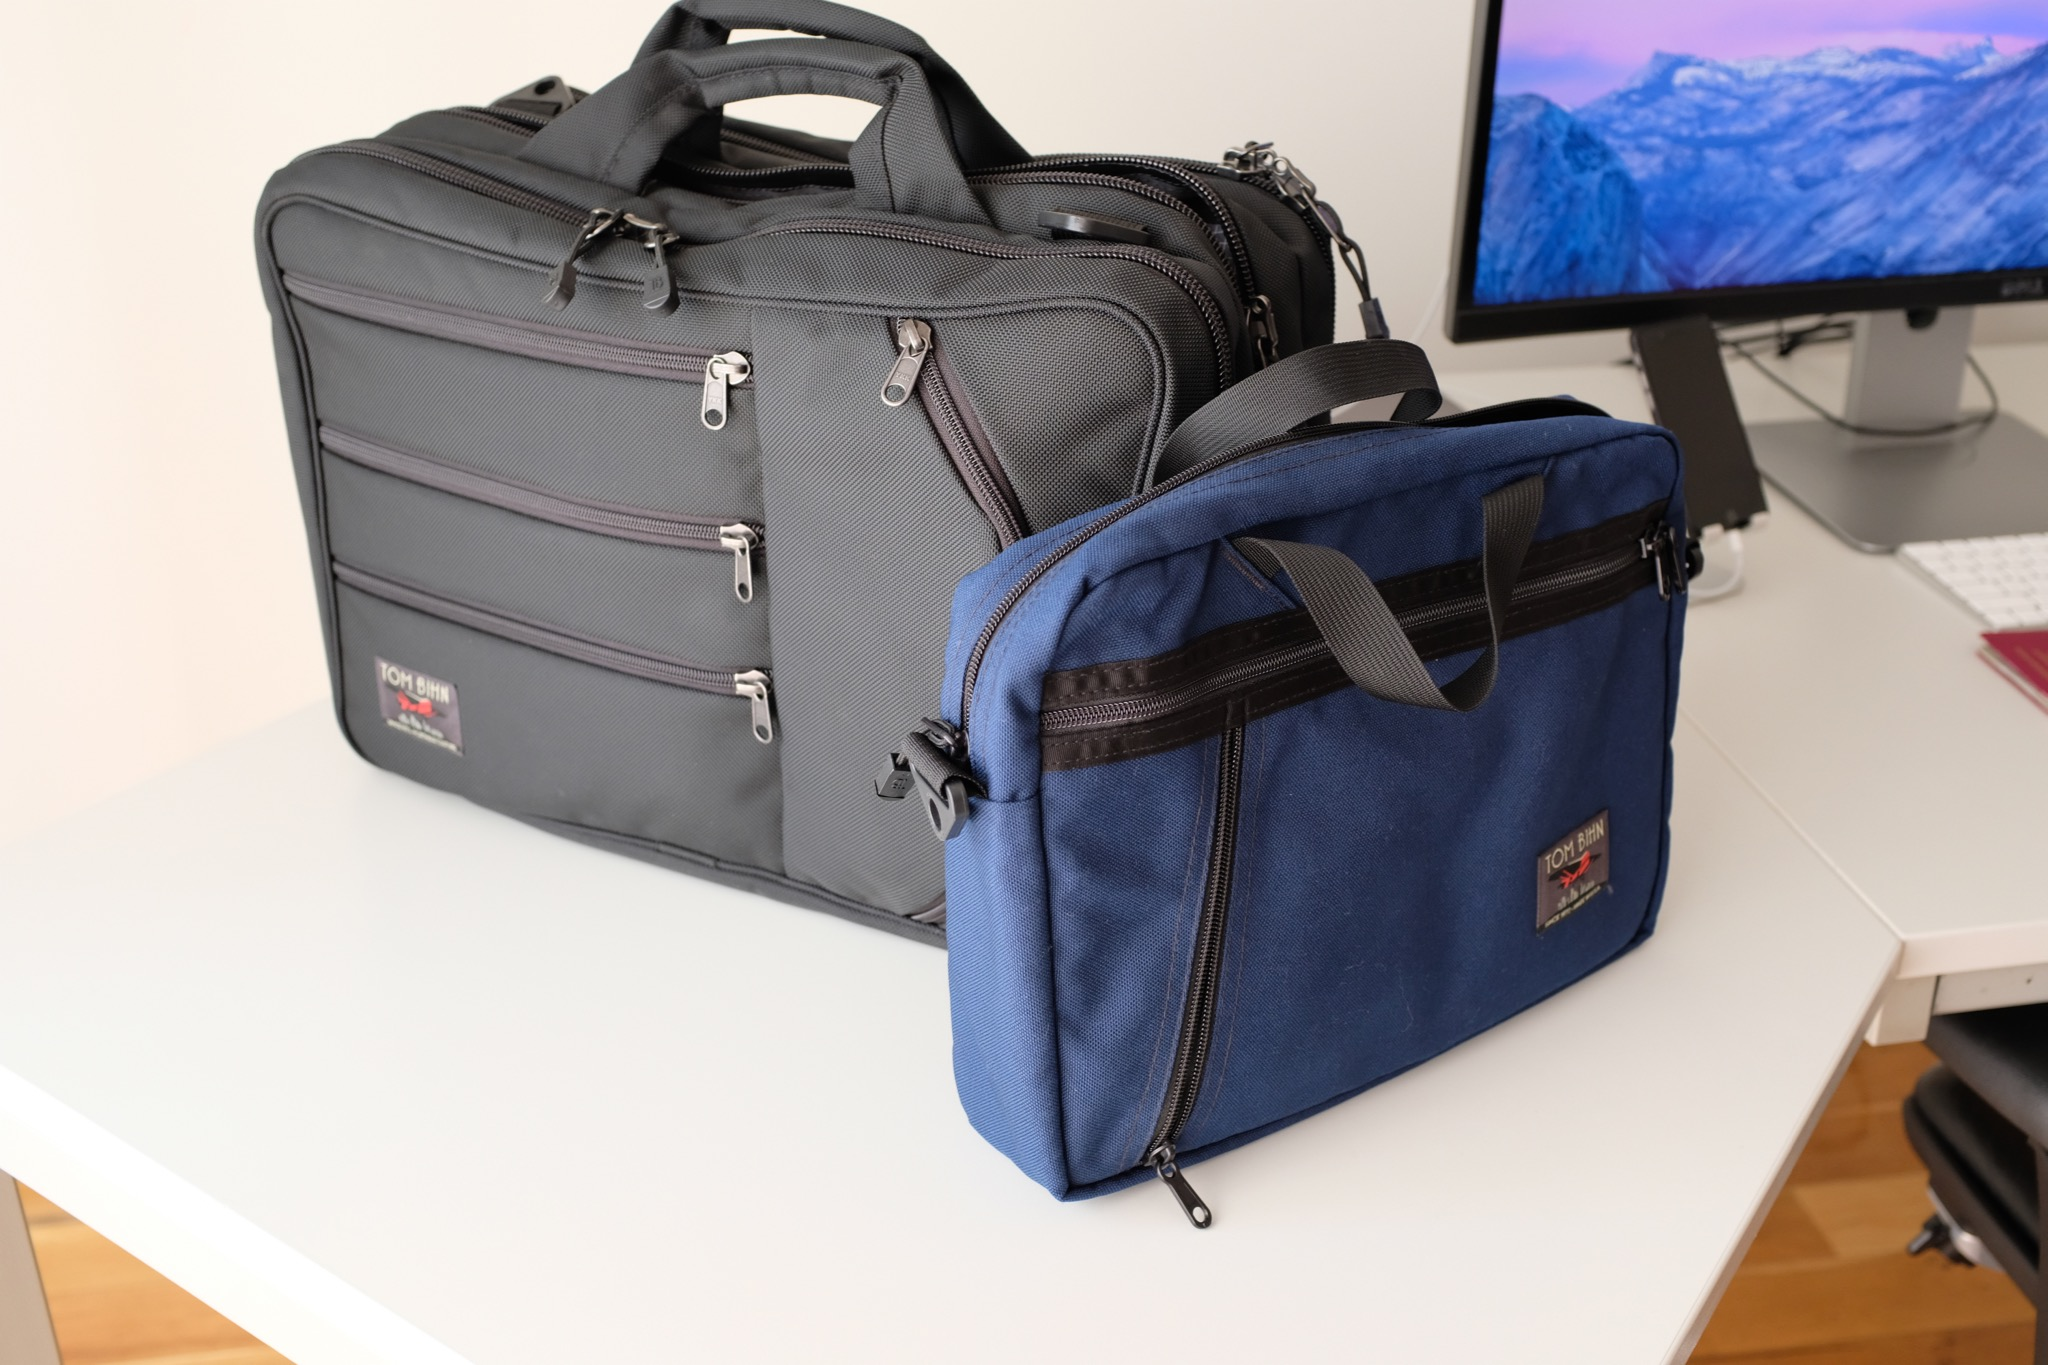 The Daylight Briefcase in comparison to the Tri-Star